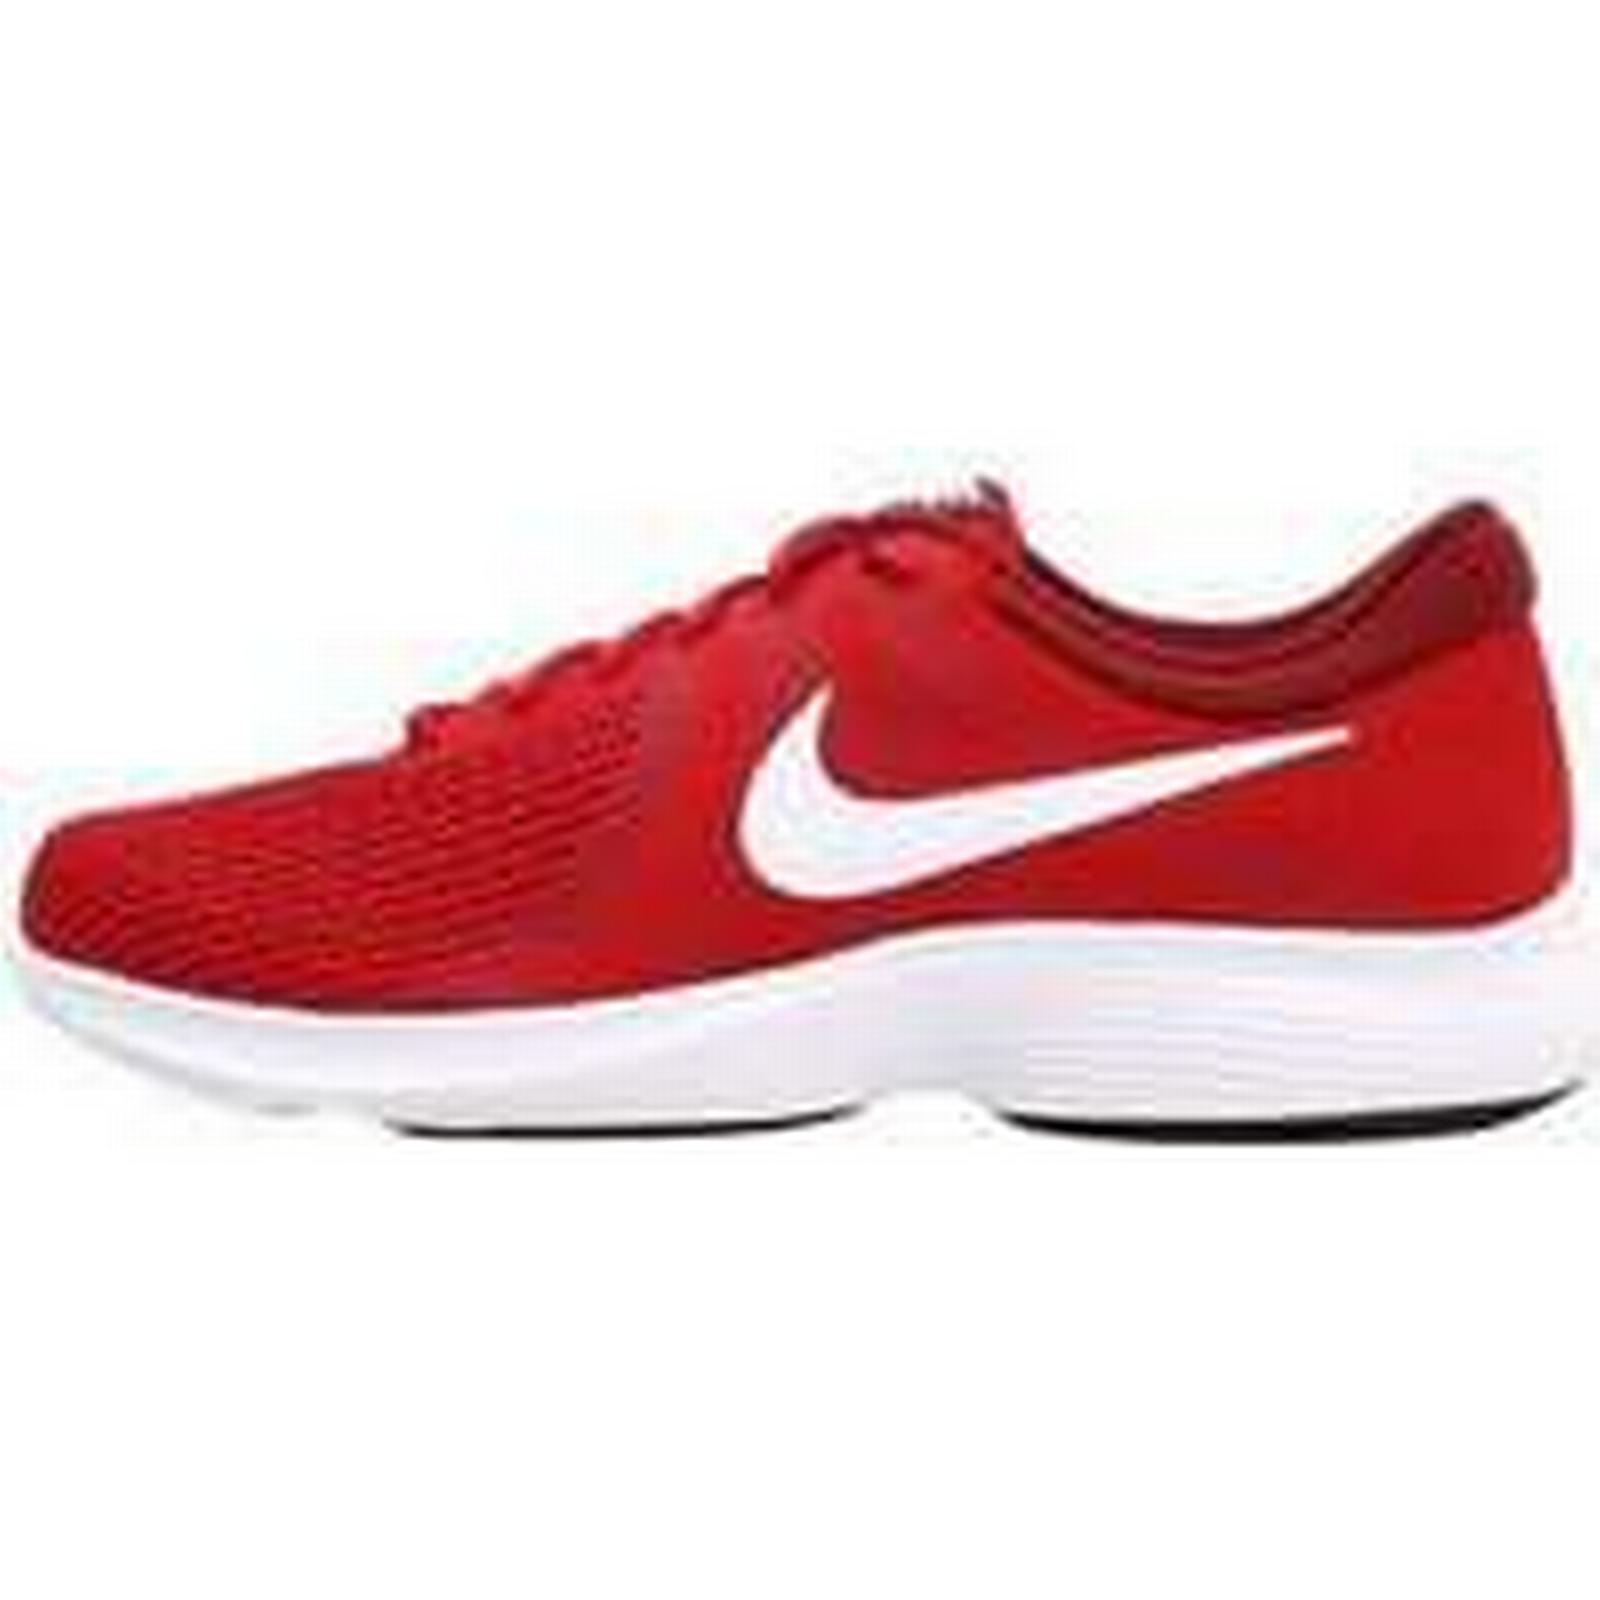 Spartoo.co.uk men's Nike Revolution 4 men's Spartoo.co.uk Shoes (Trainers) in Red 592679